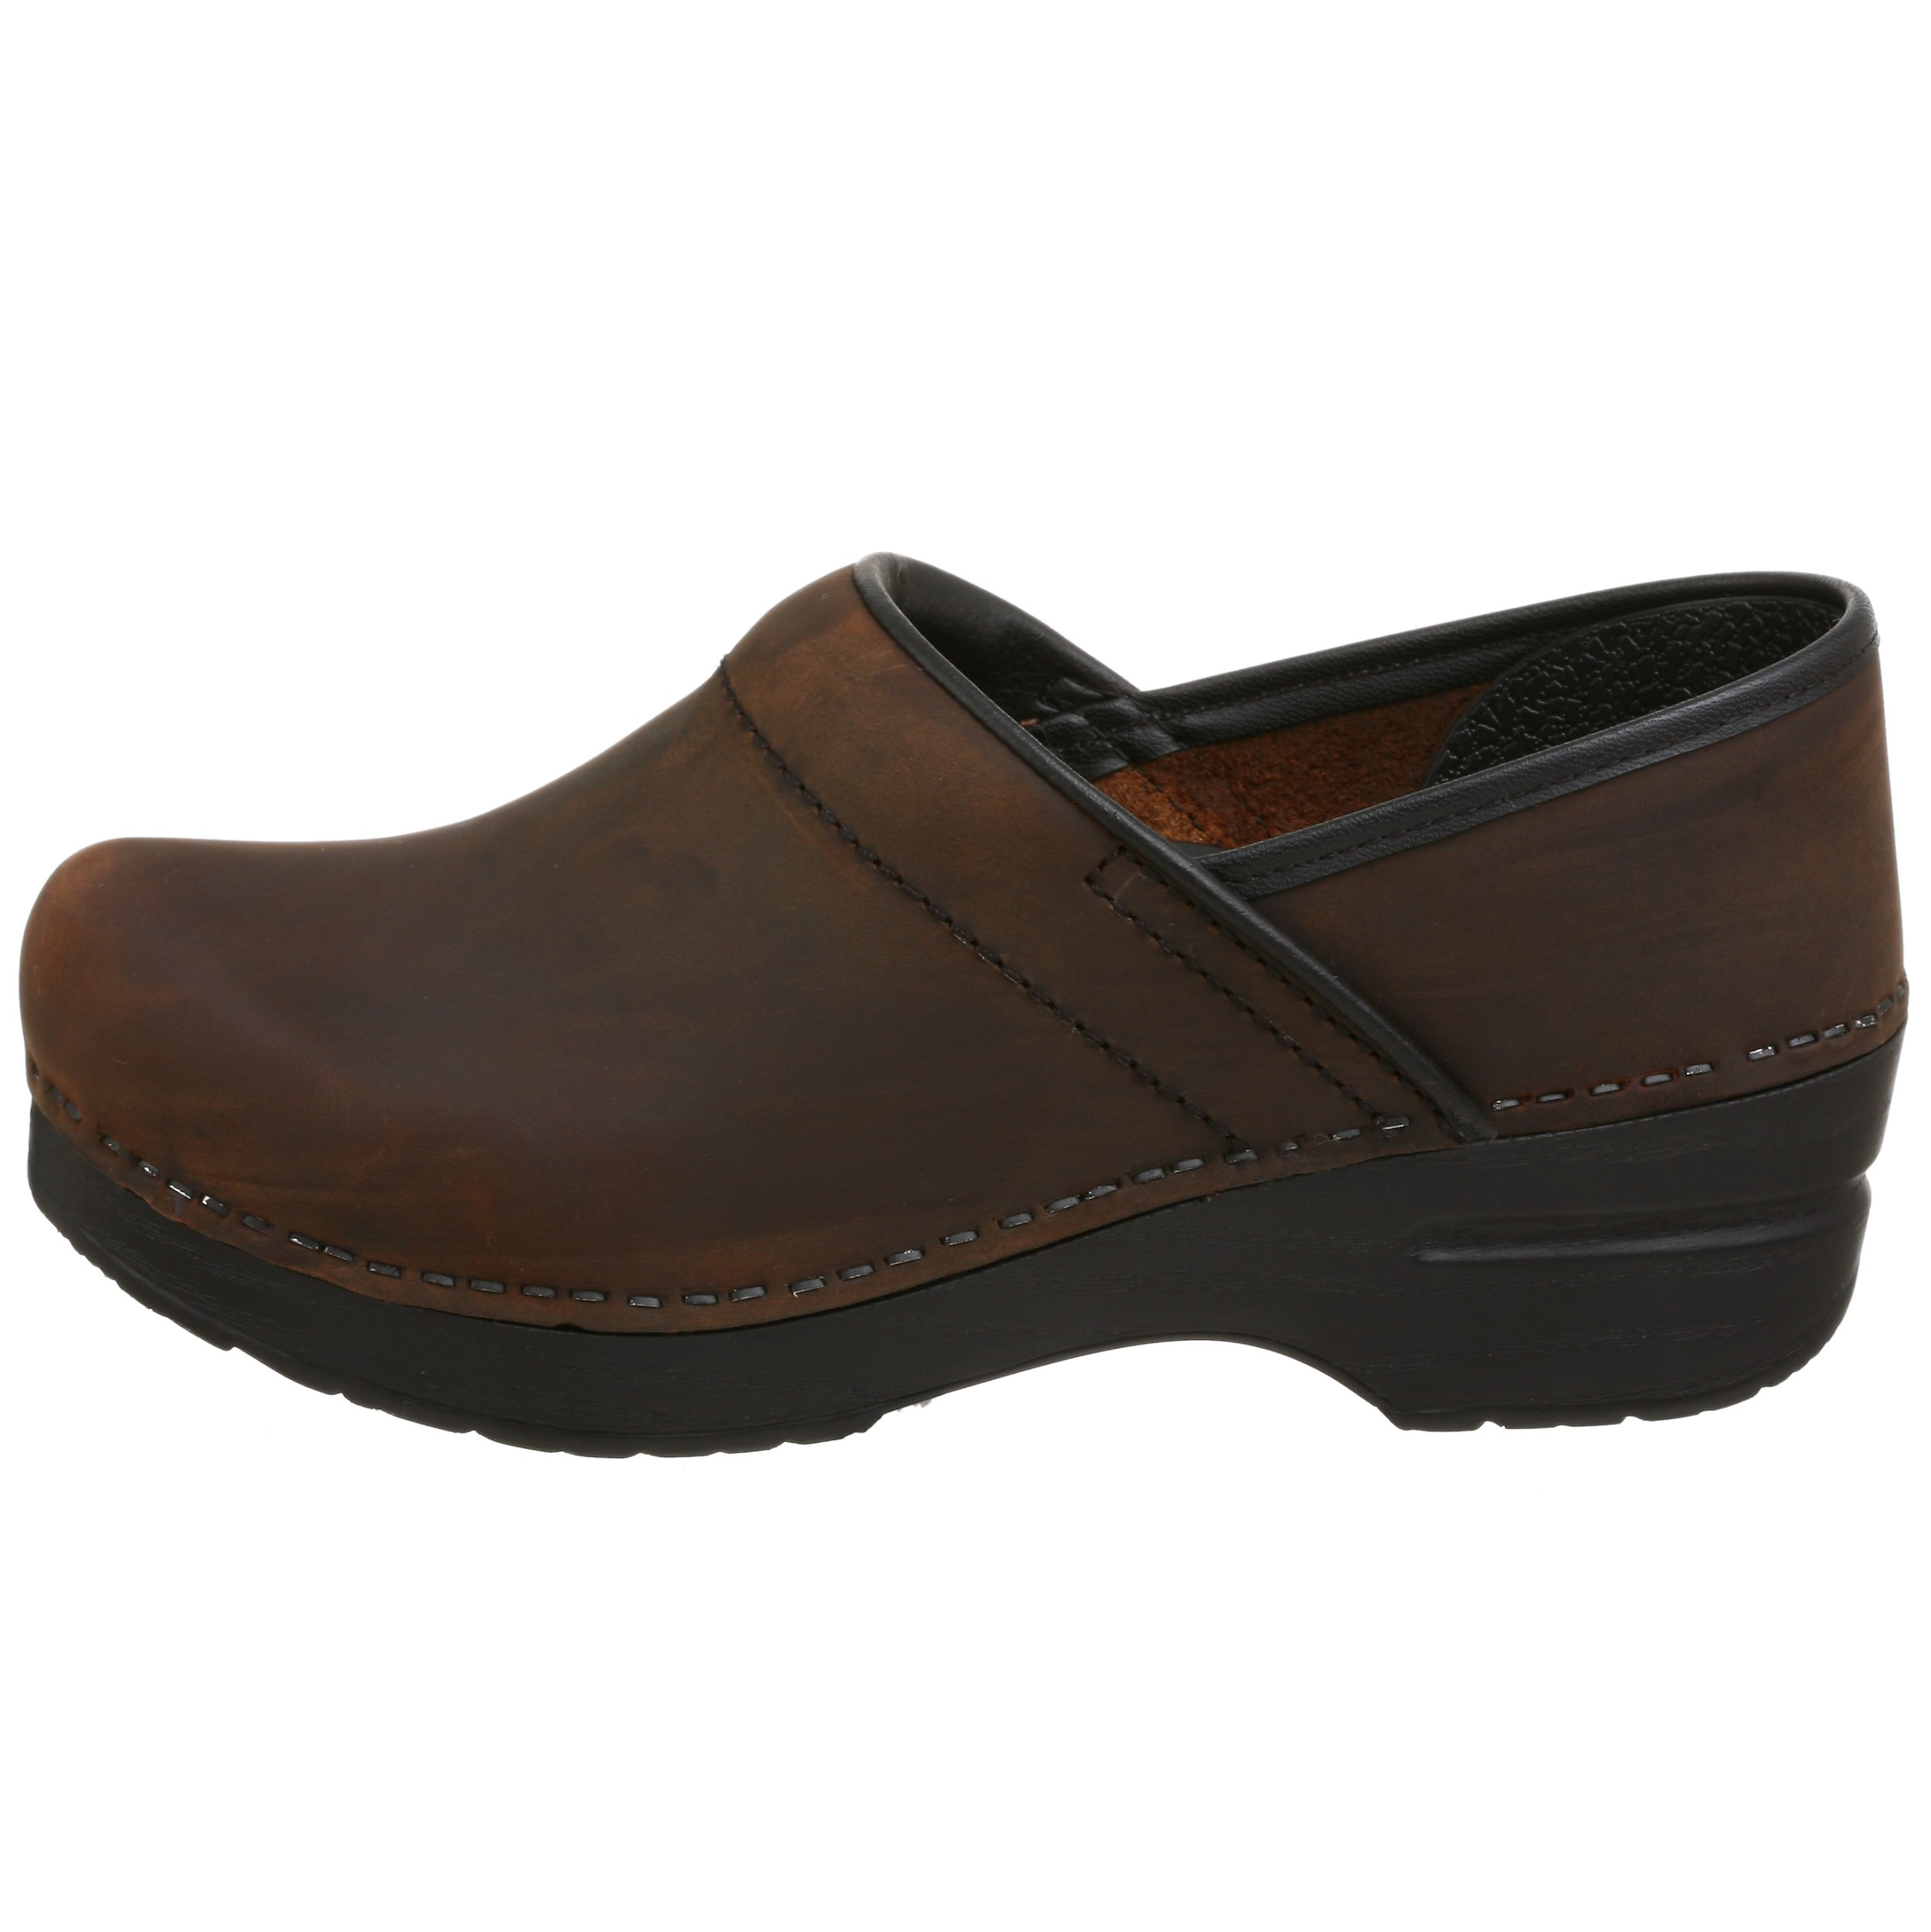 Dansko Women's Professional Oiled Leather Clog,Antique Brown/Black,35 EU / 4.5-5 B(M) US by Dansko (Image #5)